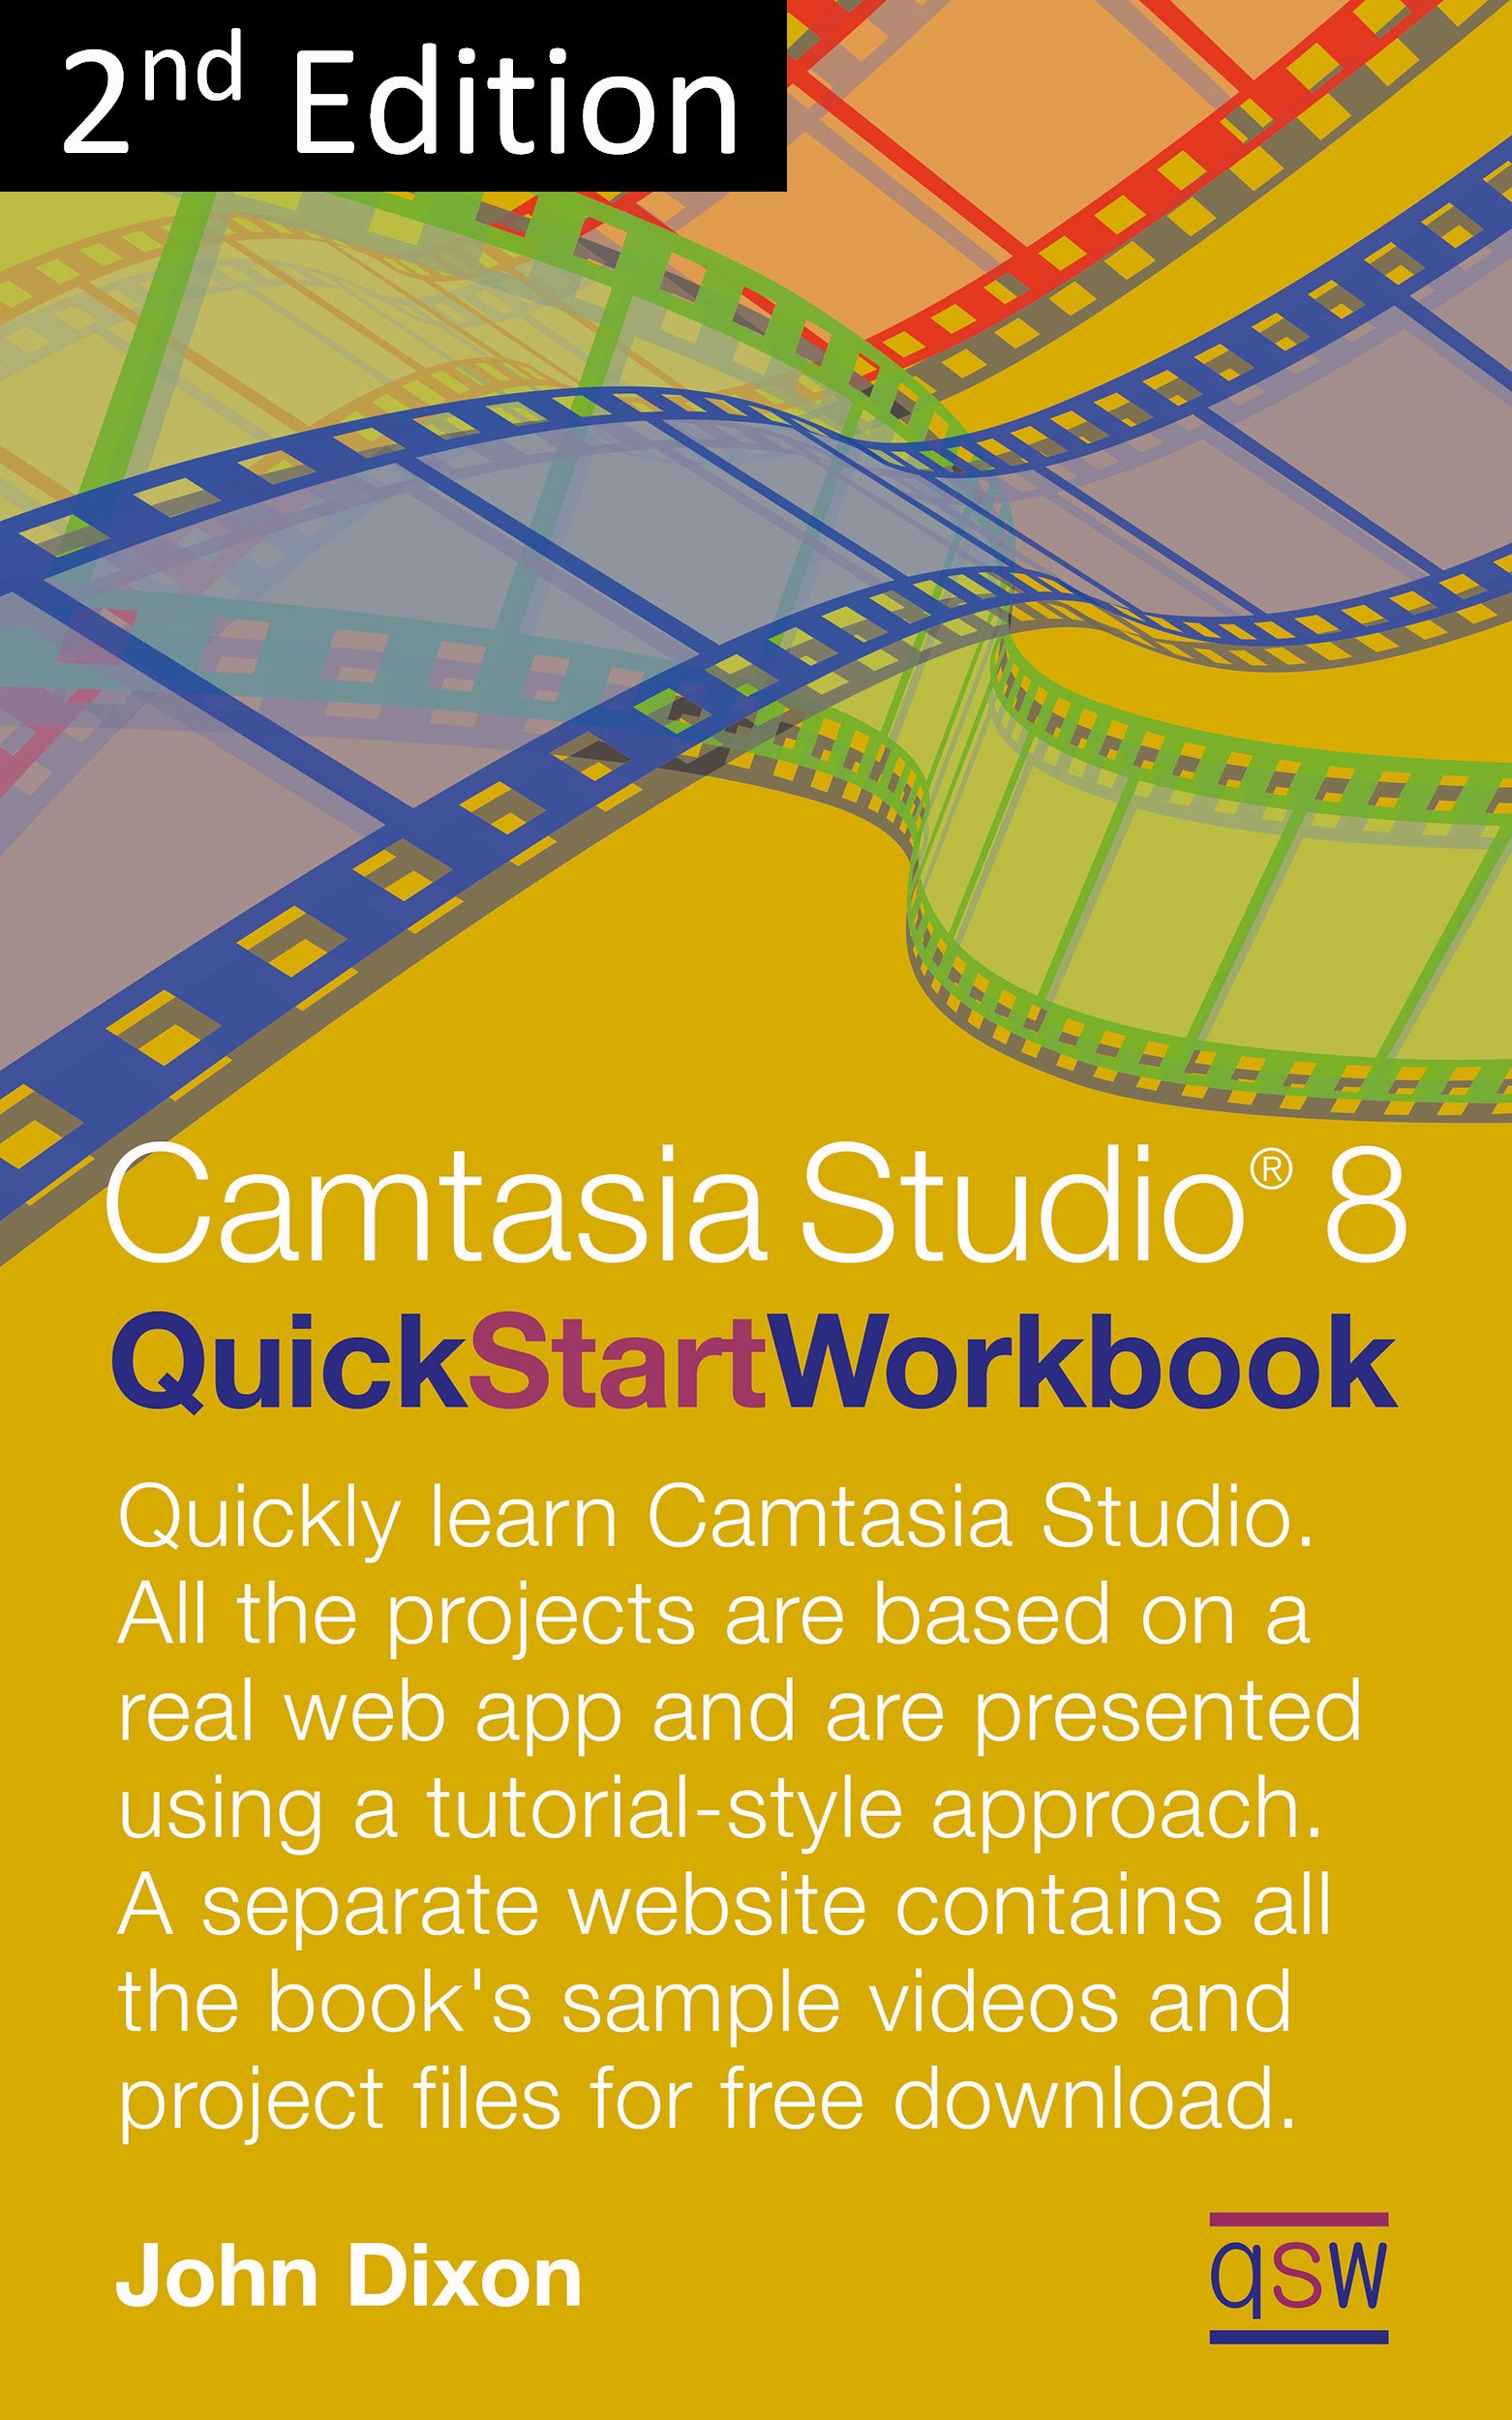 how to use camtasia studio 8 for free